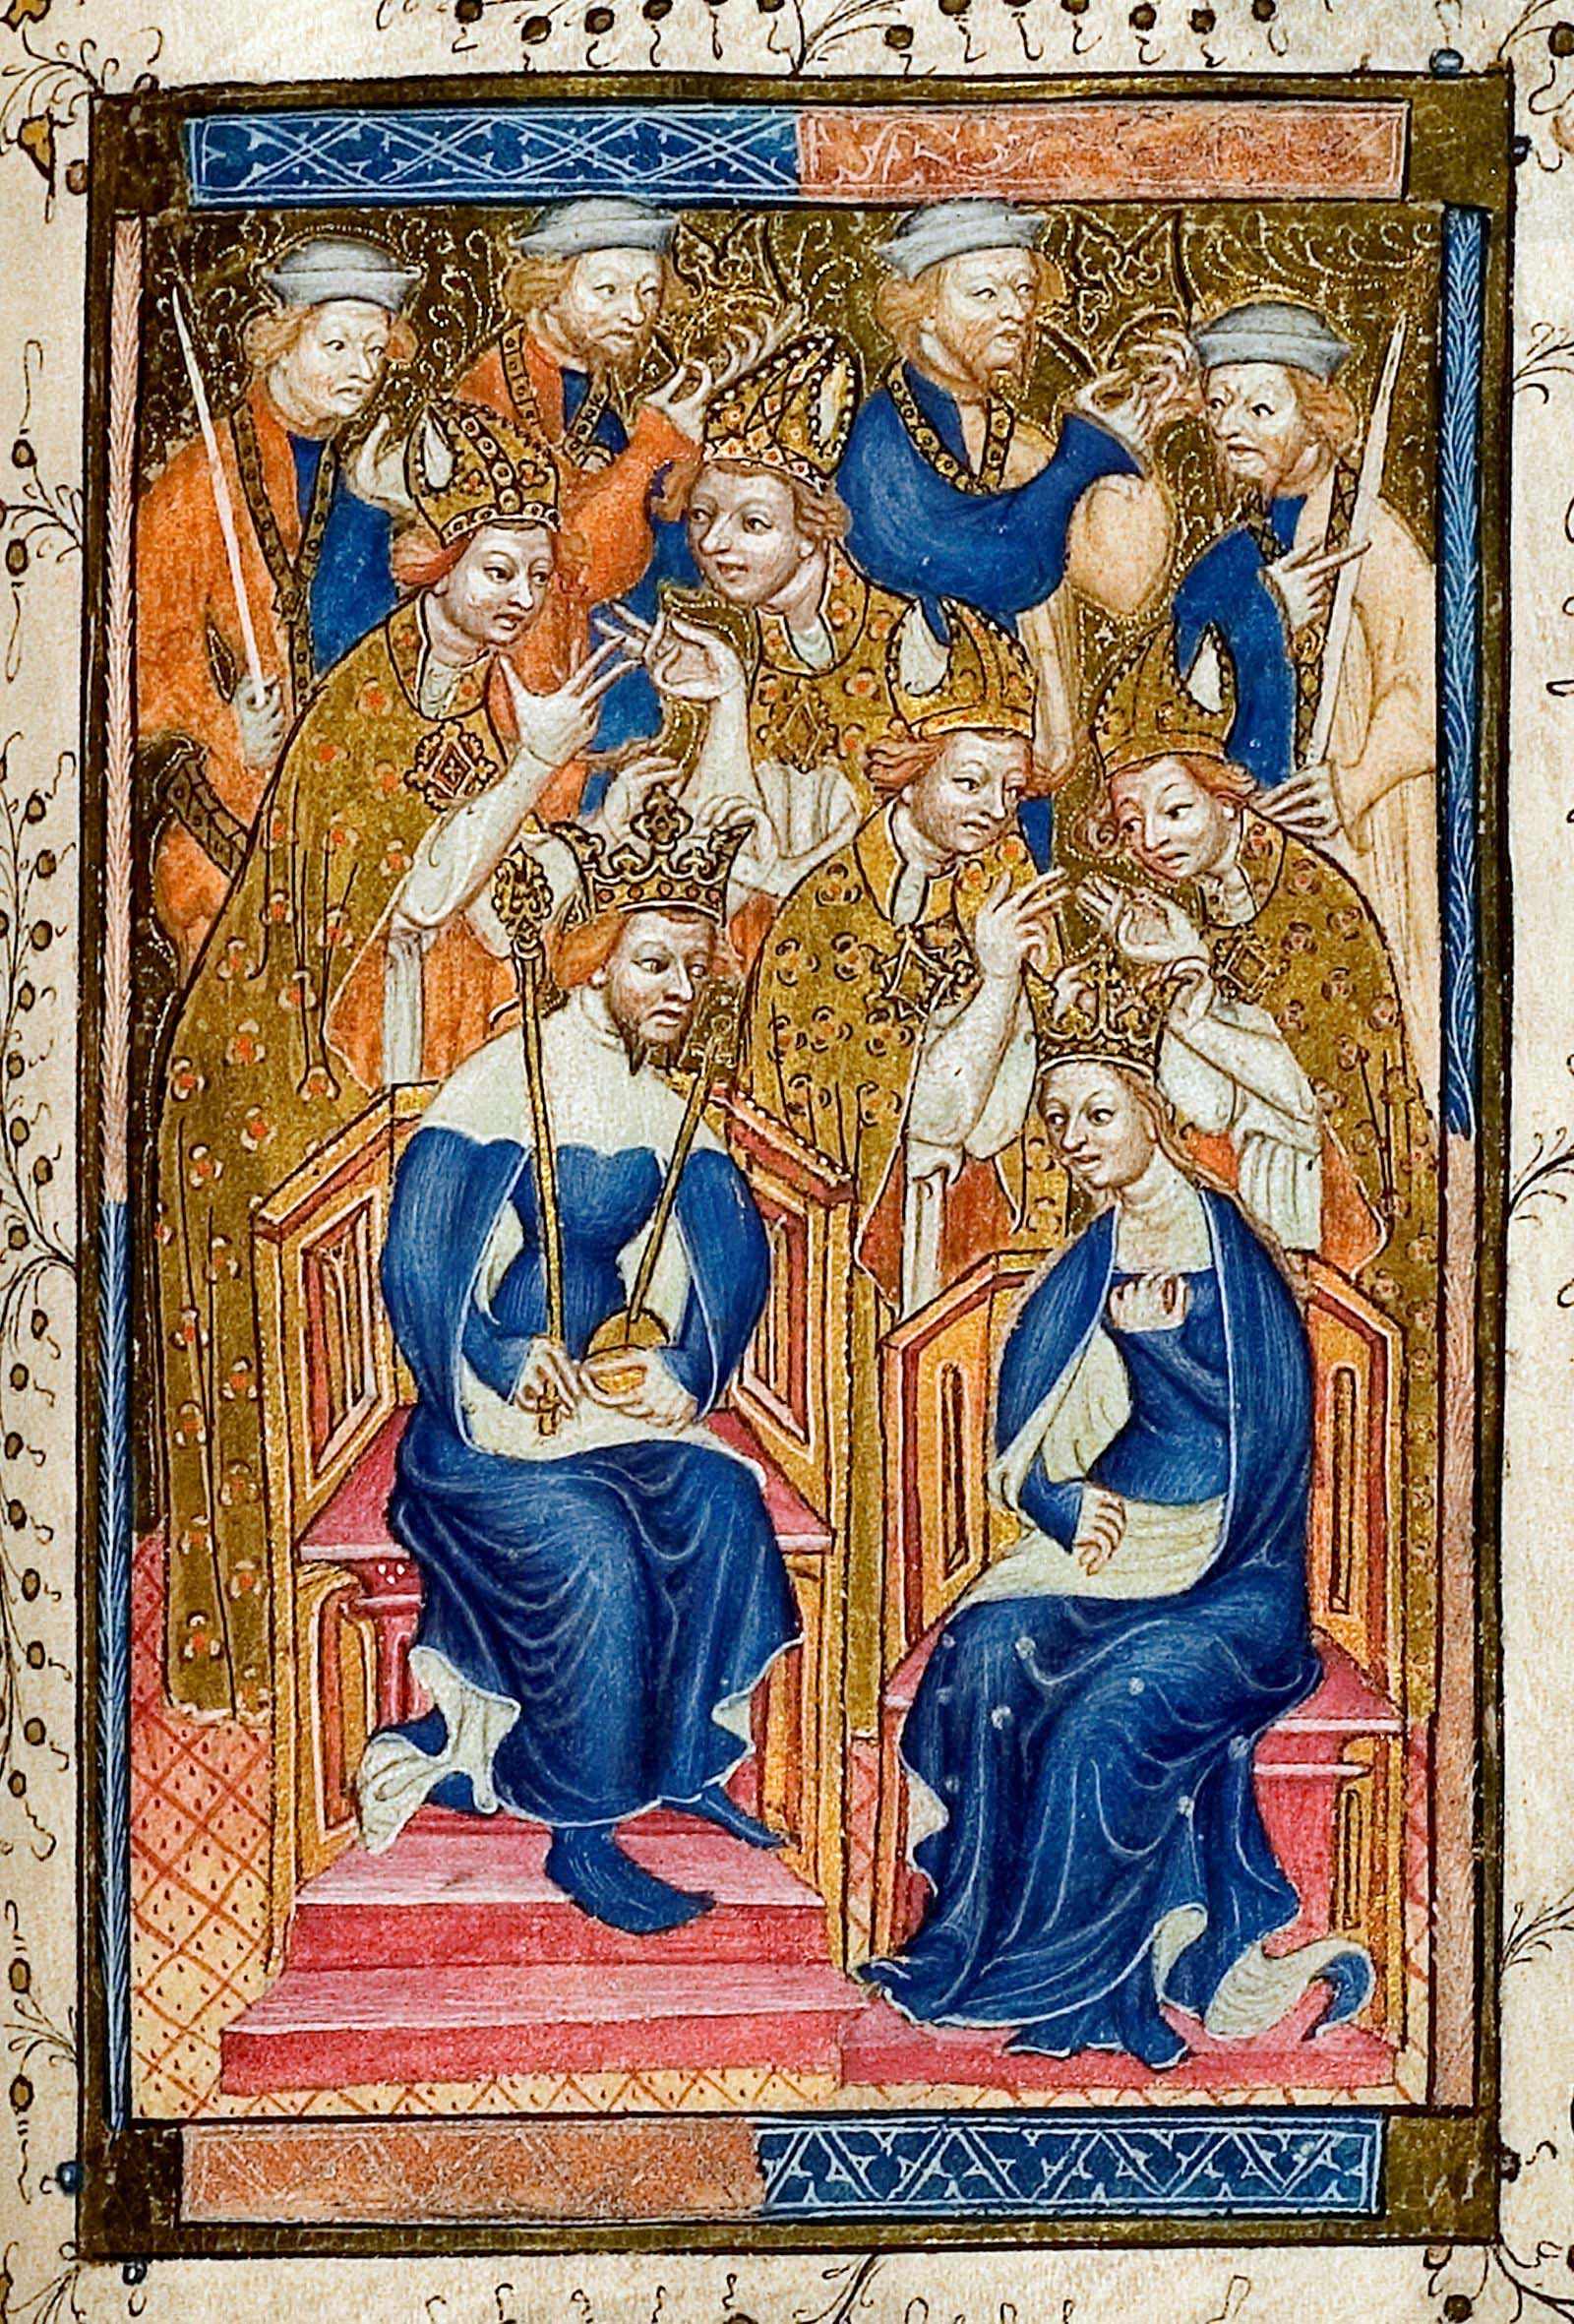 image of a king and queen crowned together with bishops crowding in the background